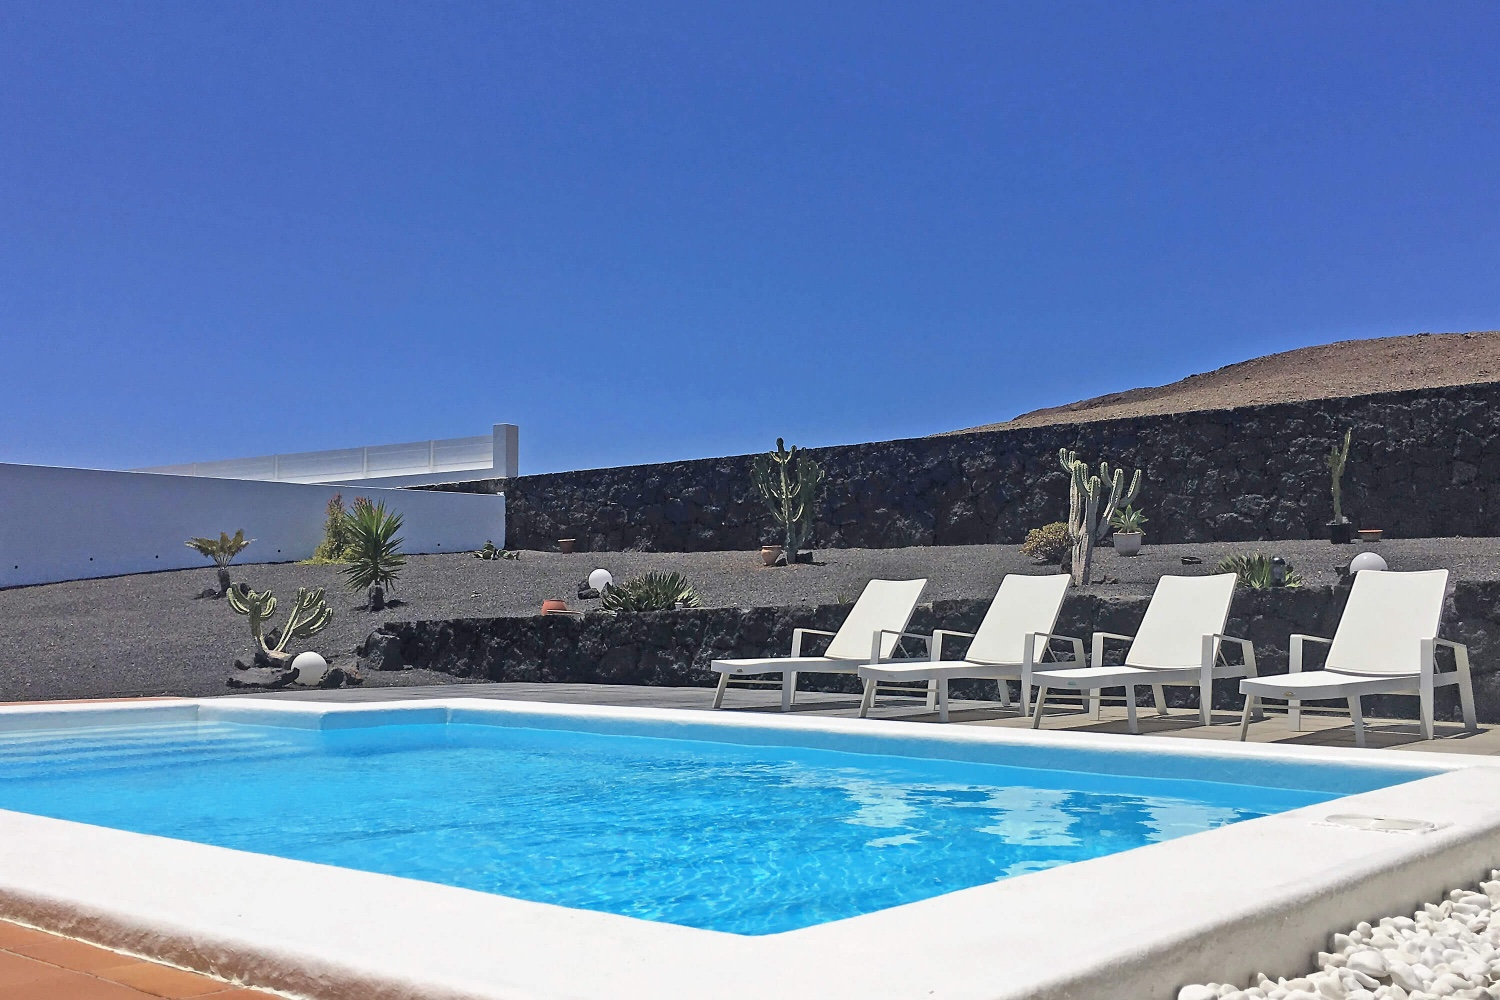 Great 3 bedroom villa with private heated pool, at the foot of a volcano overlooking the sea and near the center of Playa Blanca